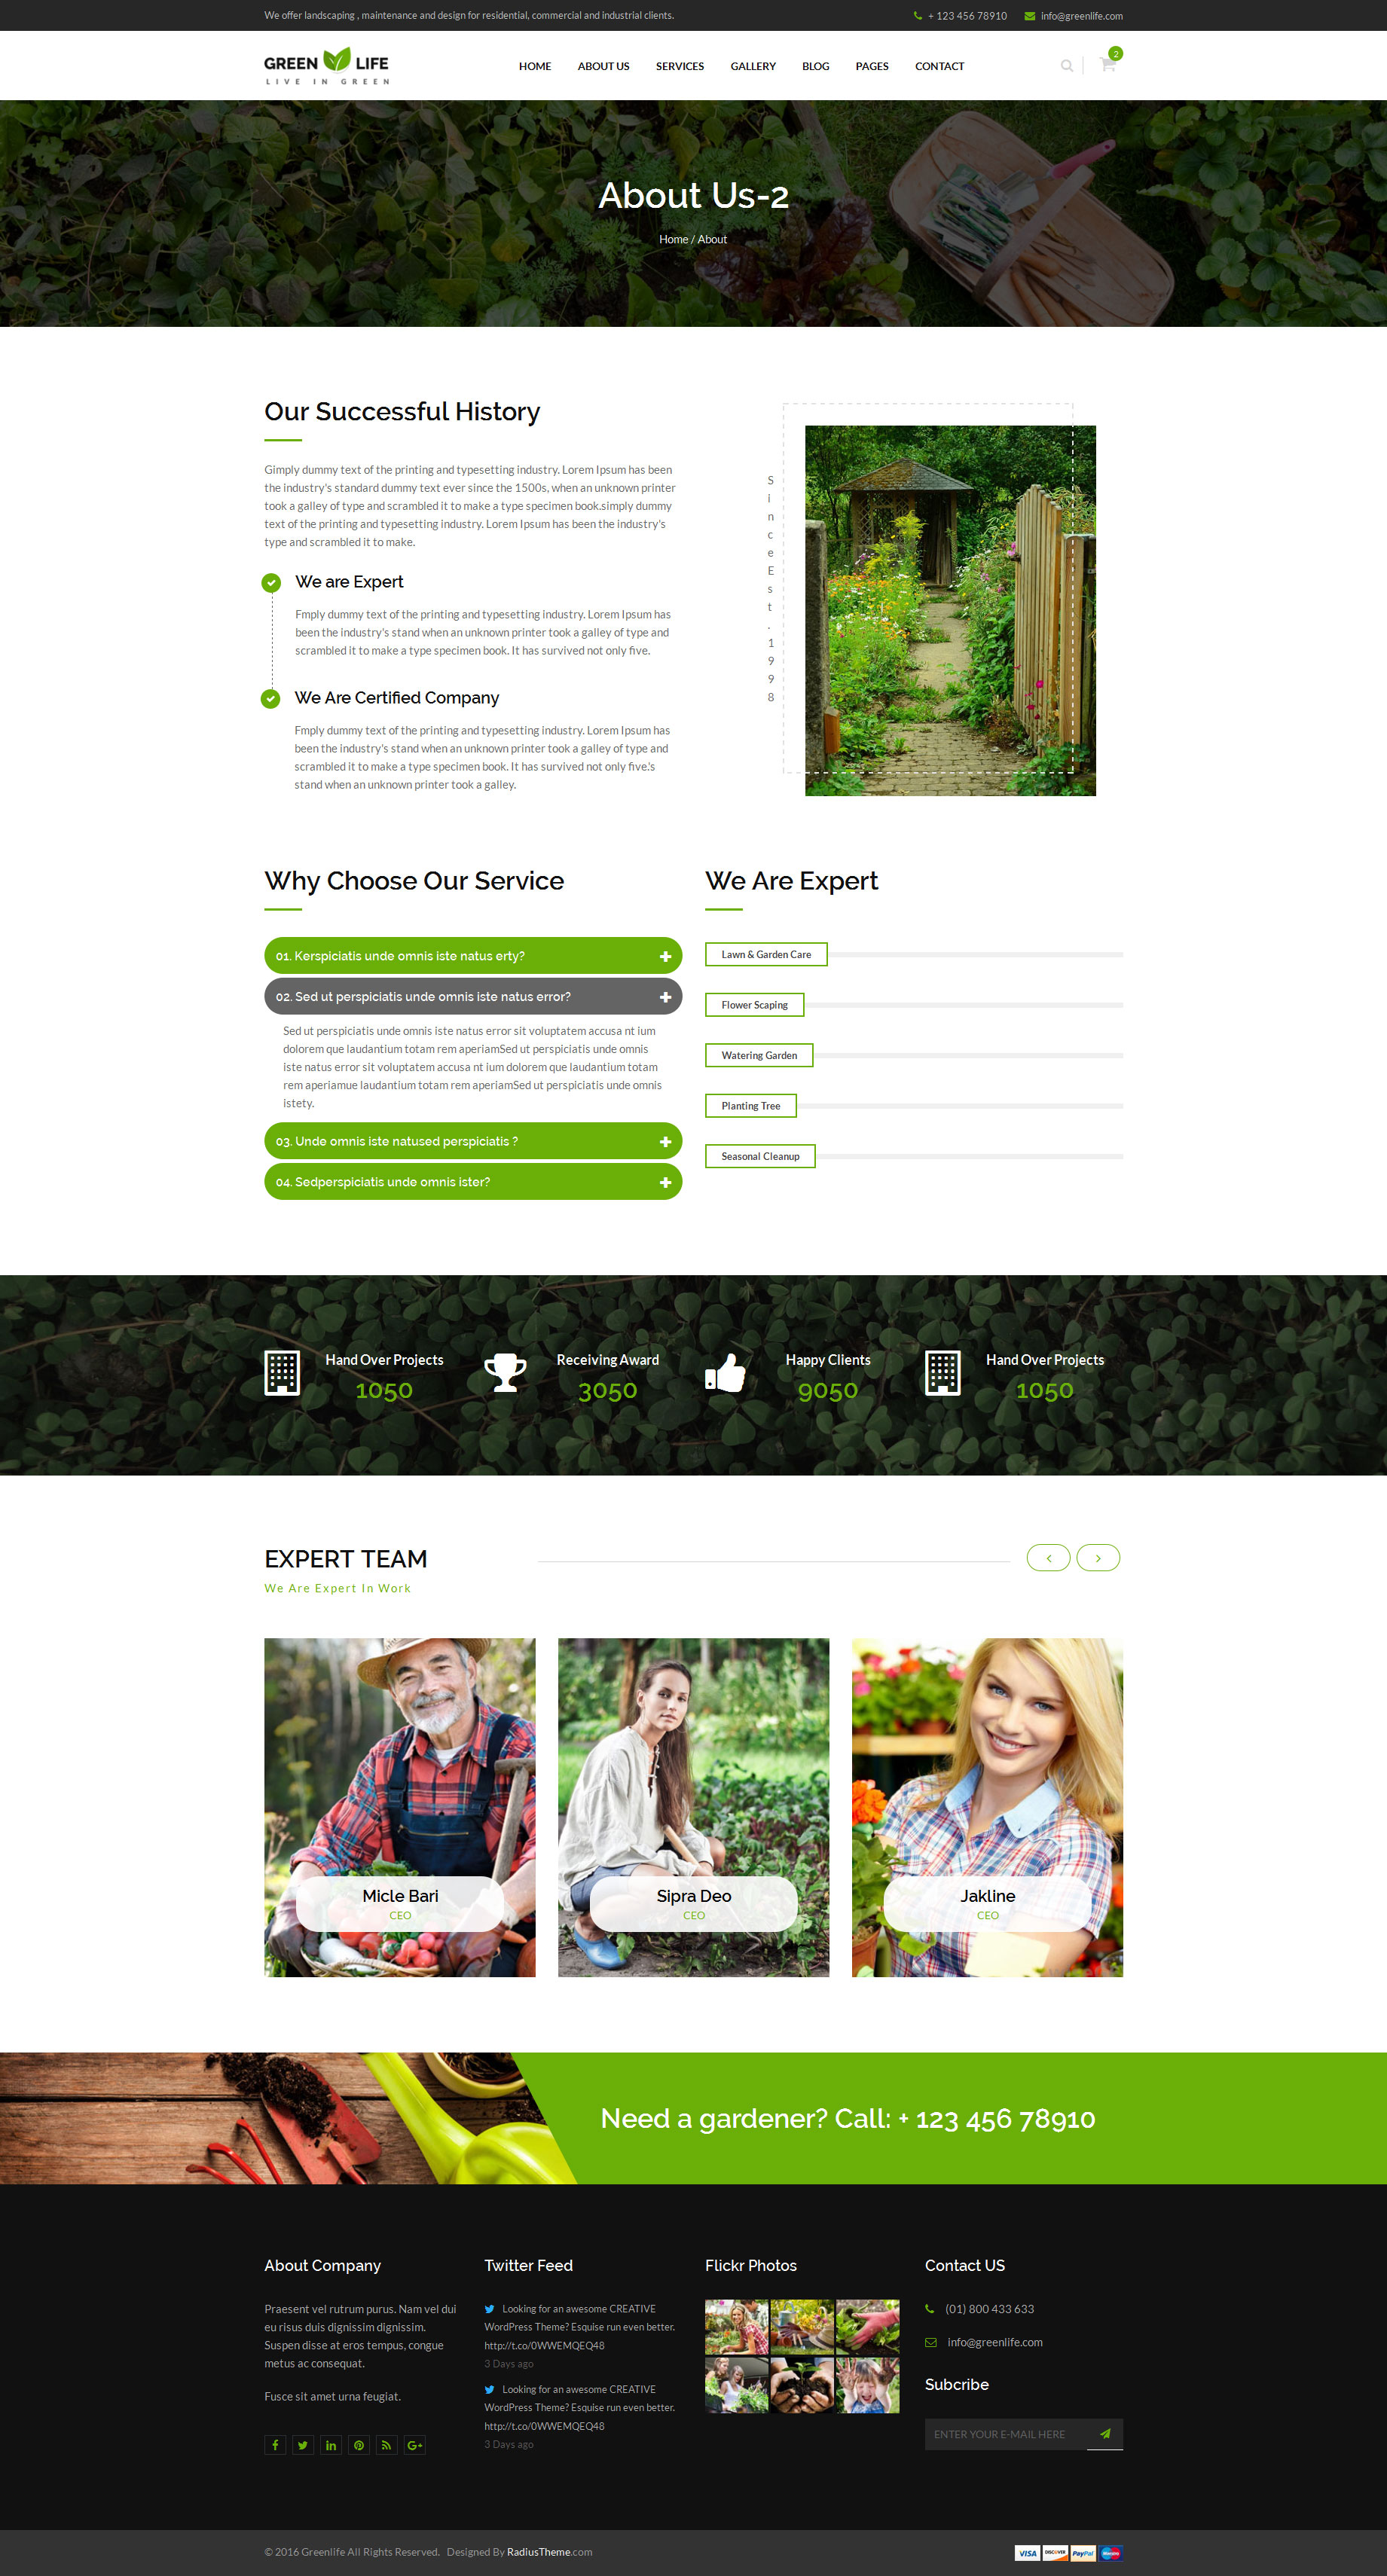 GreenLife - Gardening and Landscaping HTML5 Template by RadiusTheme